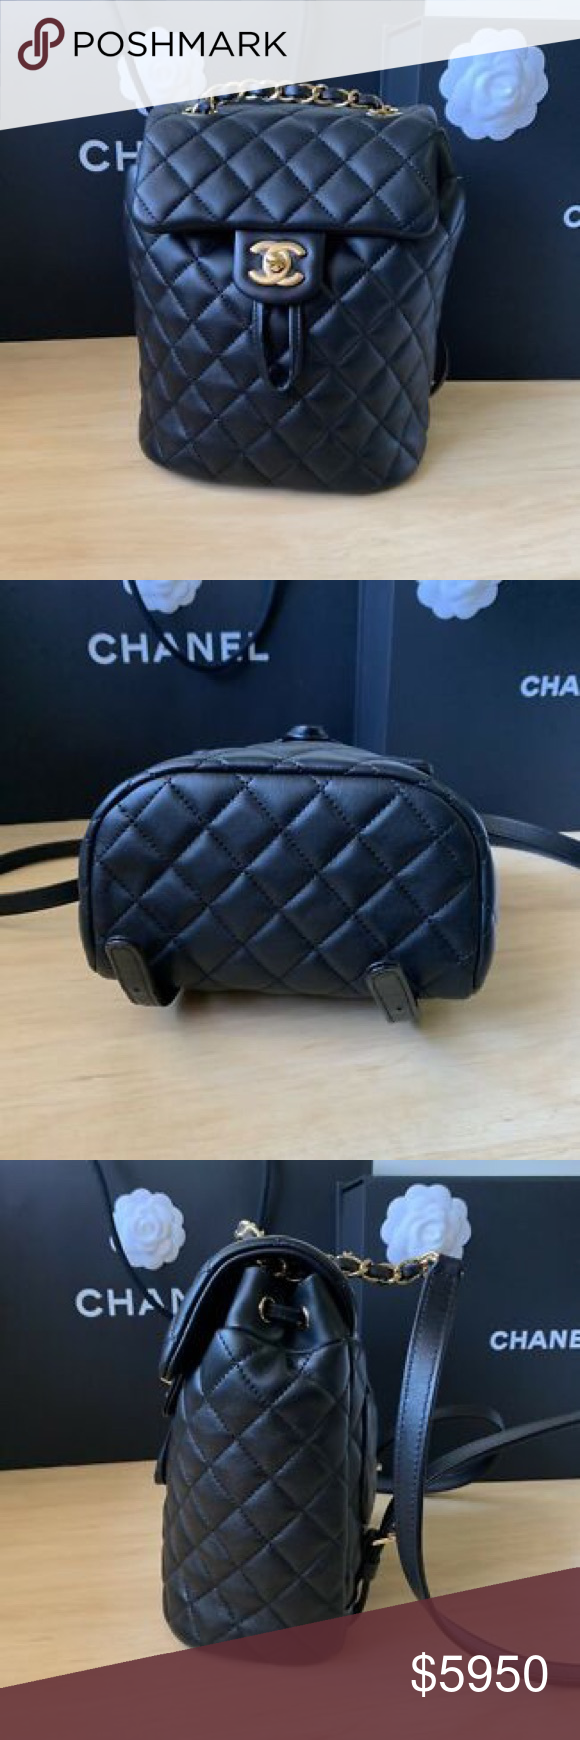 db4946dc4213 BRAND NEW CHANEL URBAN SPIRIT BACKPACK 2018 RARE LIMITED EDITION SOLD-OUT  COLLECTOR'S ITEM!